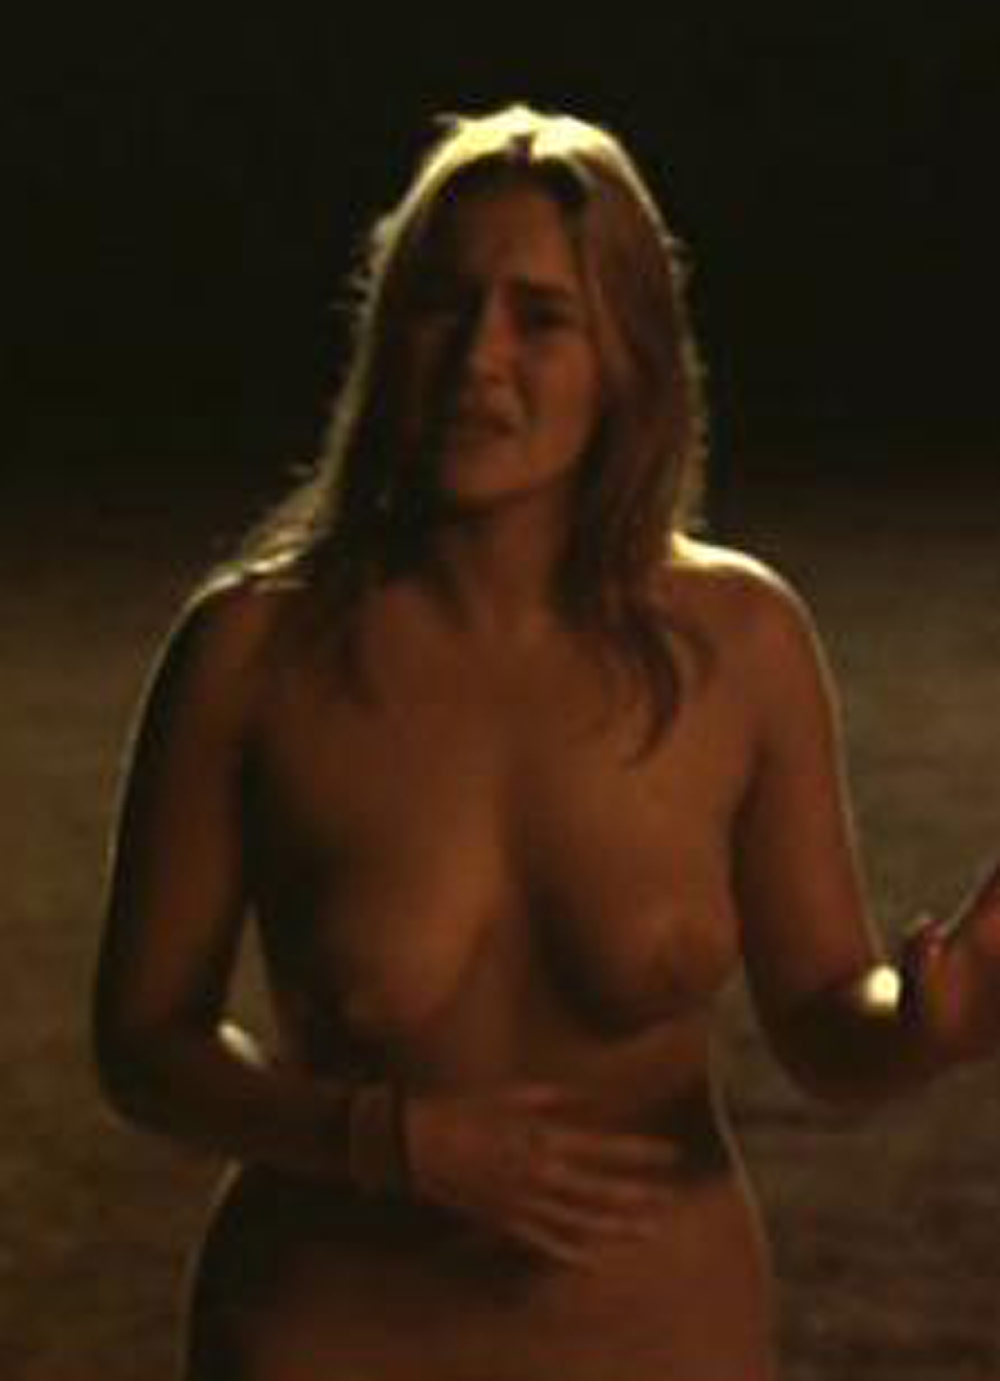 Nude movie clip of kate winslet